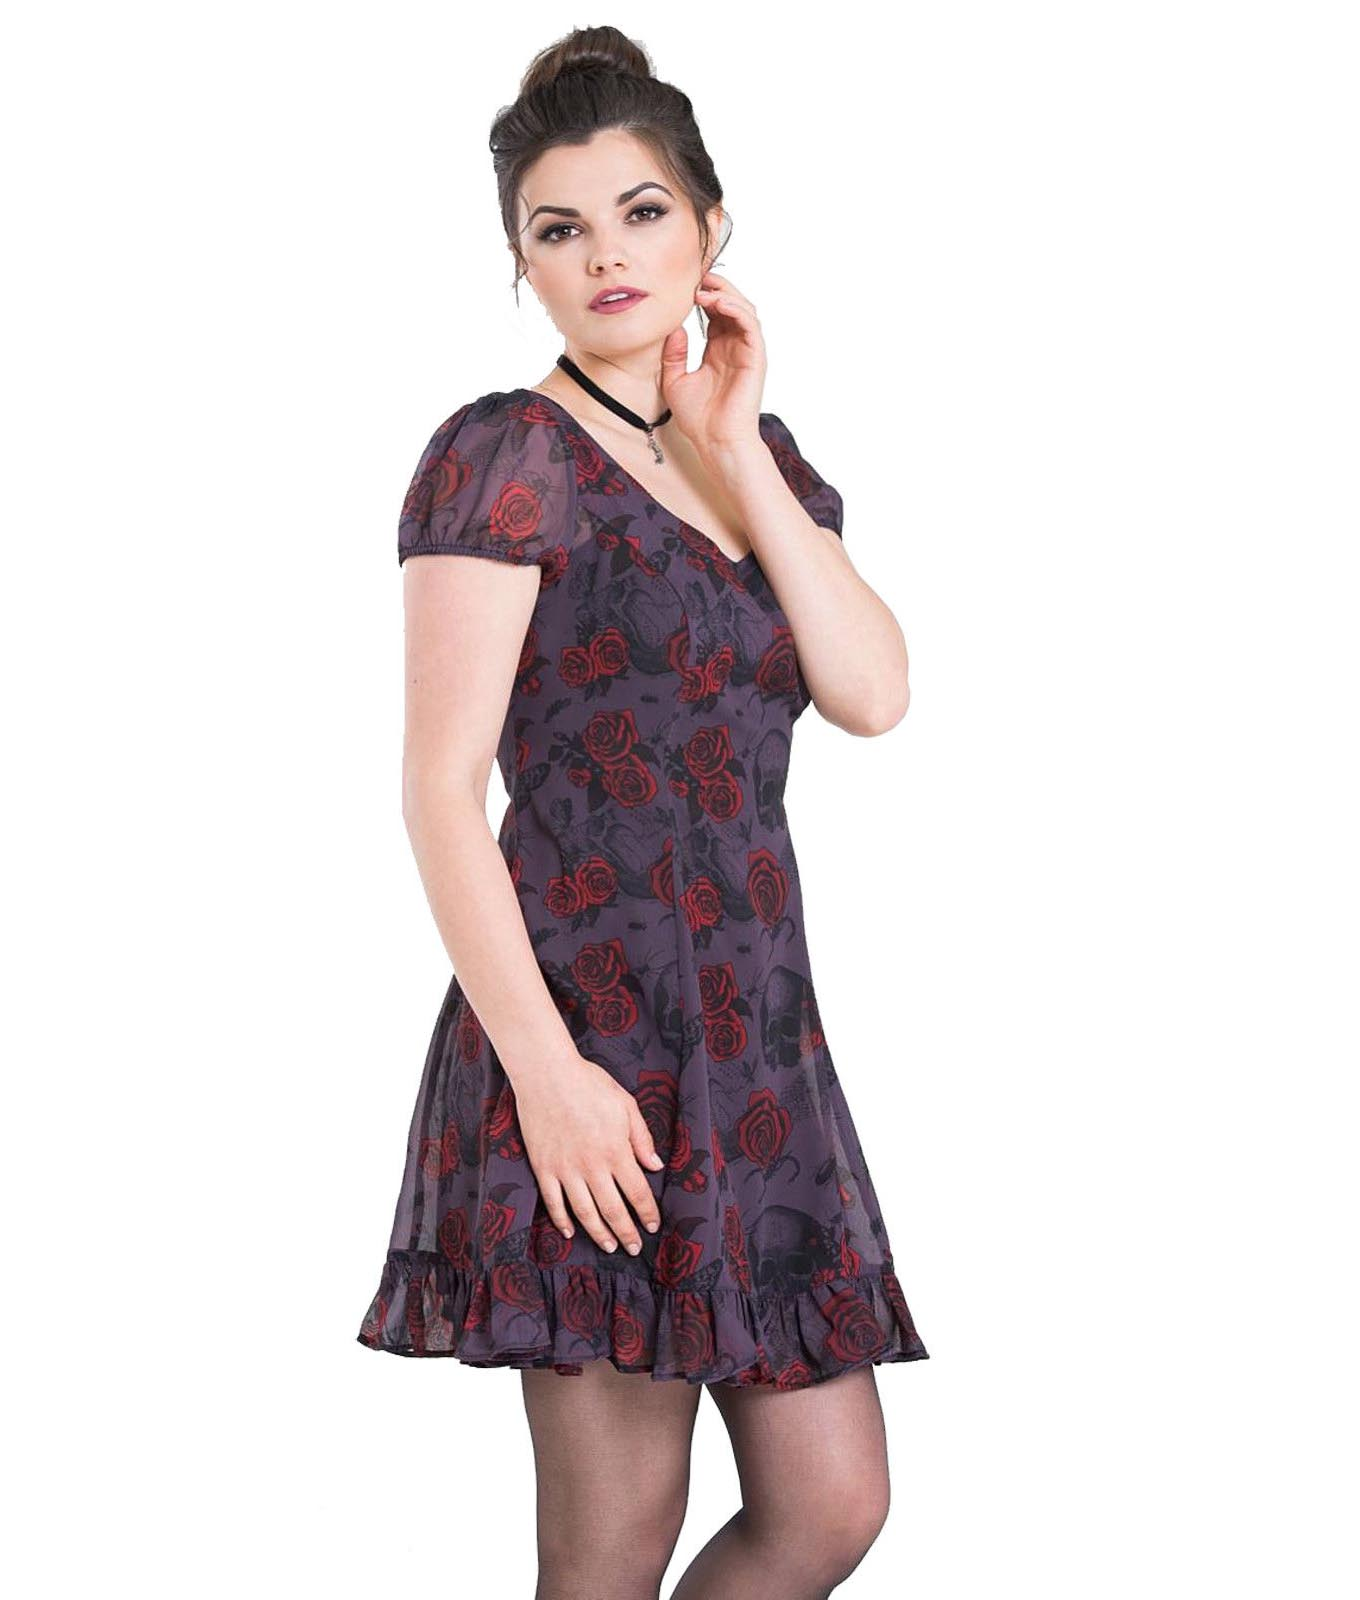 Hell-Bunny-Goth-Floaty-Mini-Dress-BUGS-amp-ROSES-Skulls-Butterfly-Purple-All-Sizes thumbnail 39